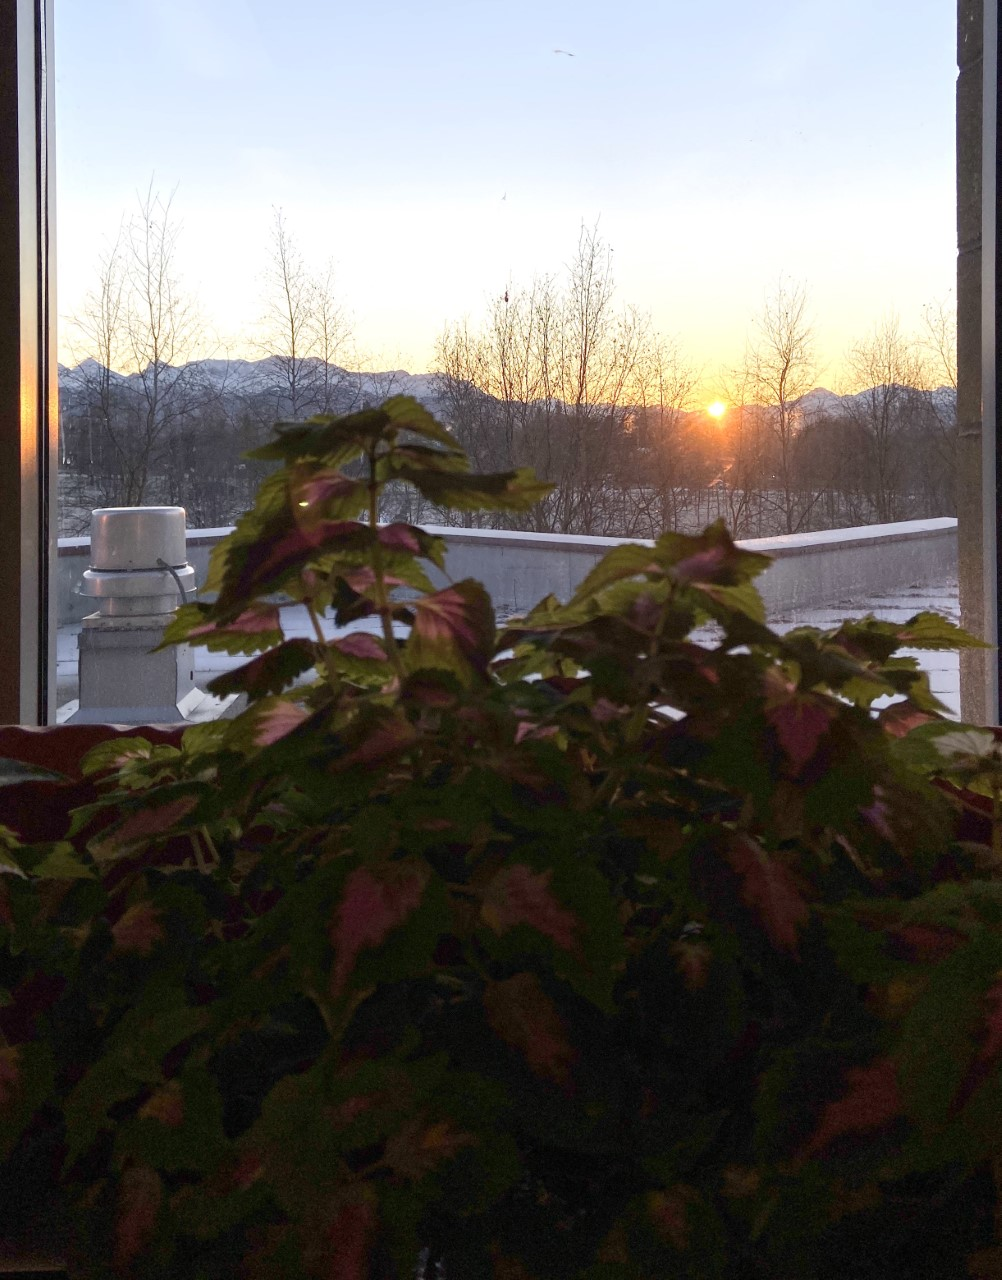 The sun emerges on a frosty morning one day before the Winter Solstice. Photo taken by Jennifer Childress from her Dimond classroom.